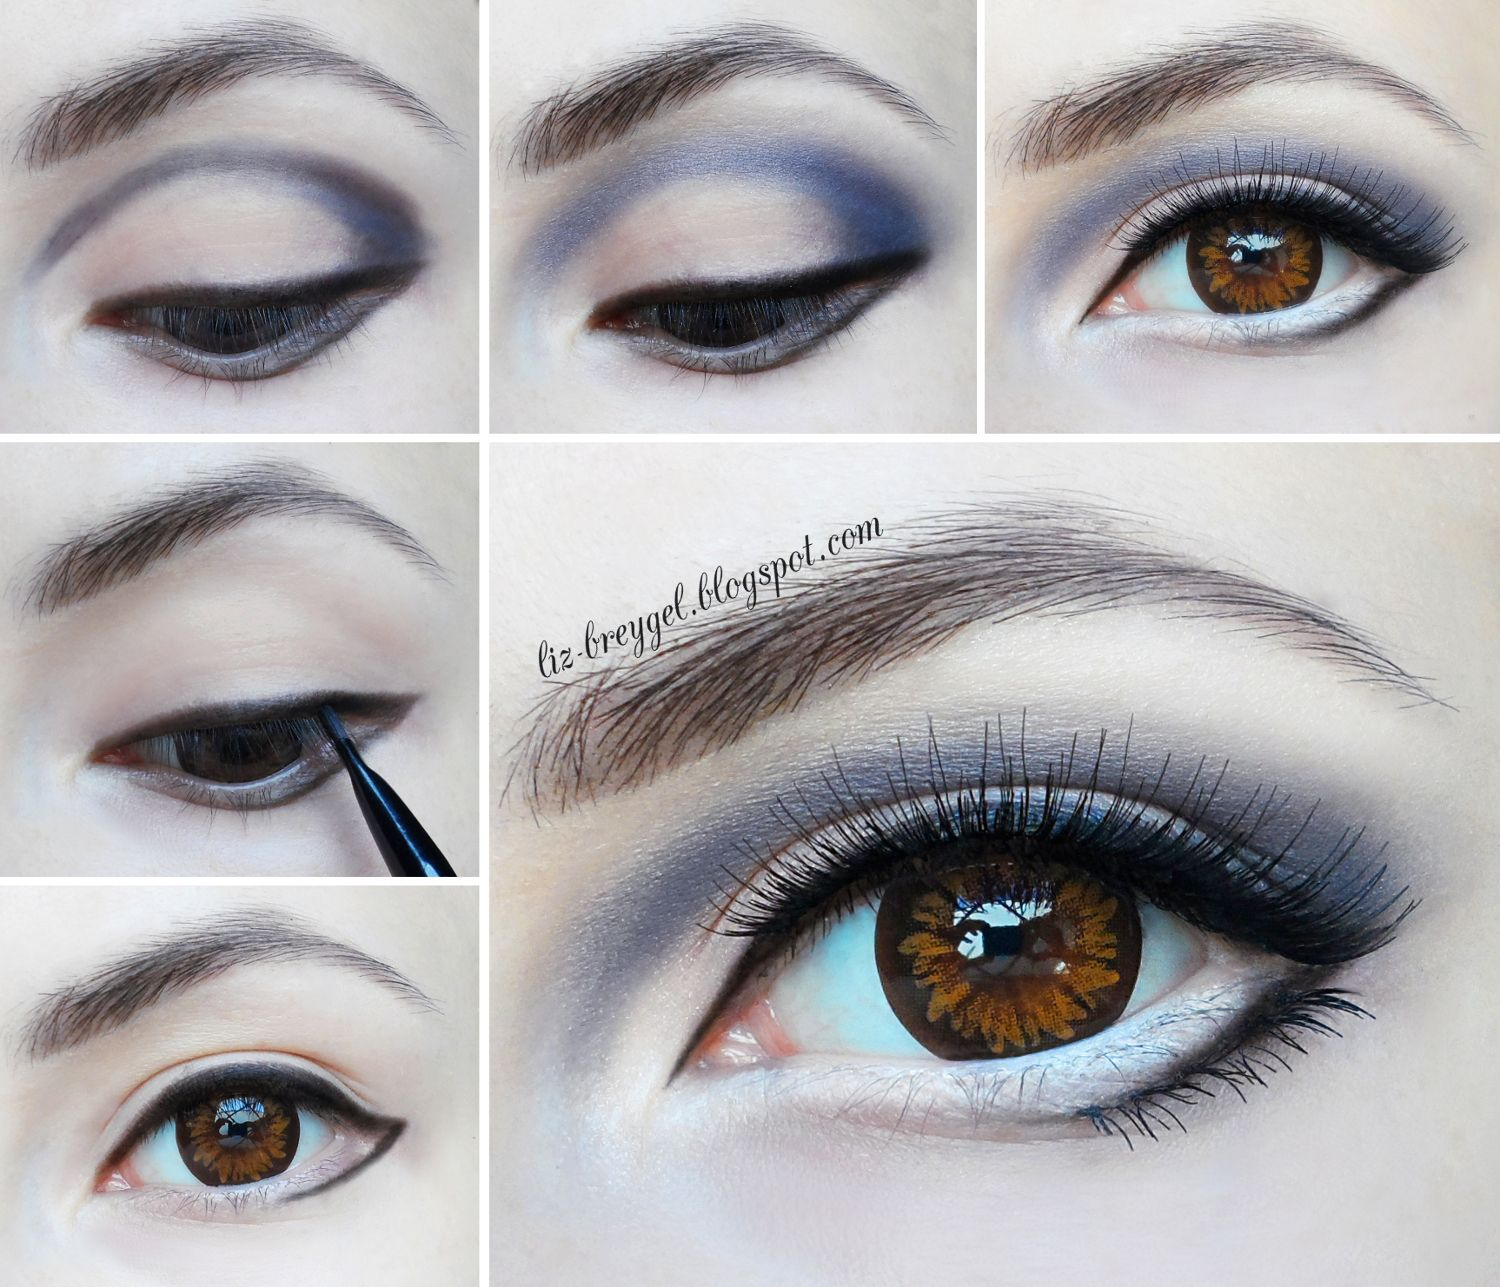 Big Anime Eyes Step By Step Makeup Tutorial (With images